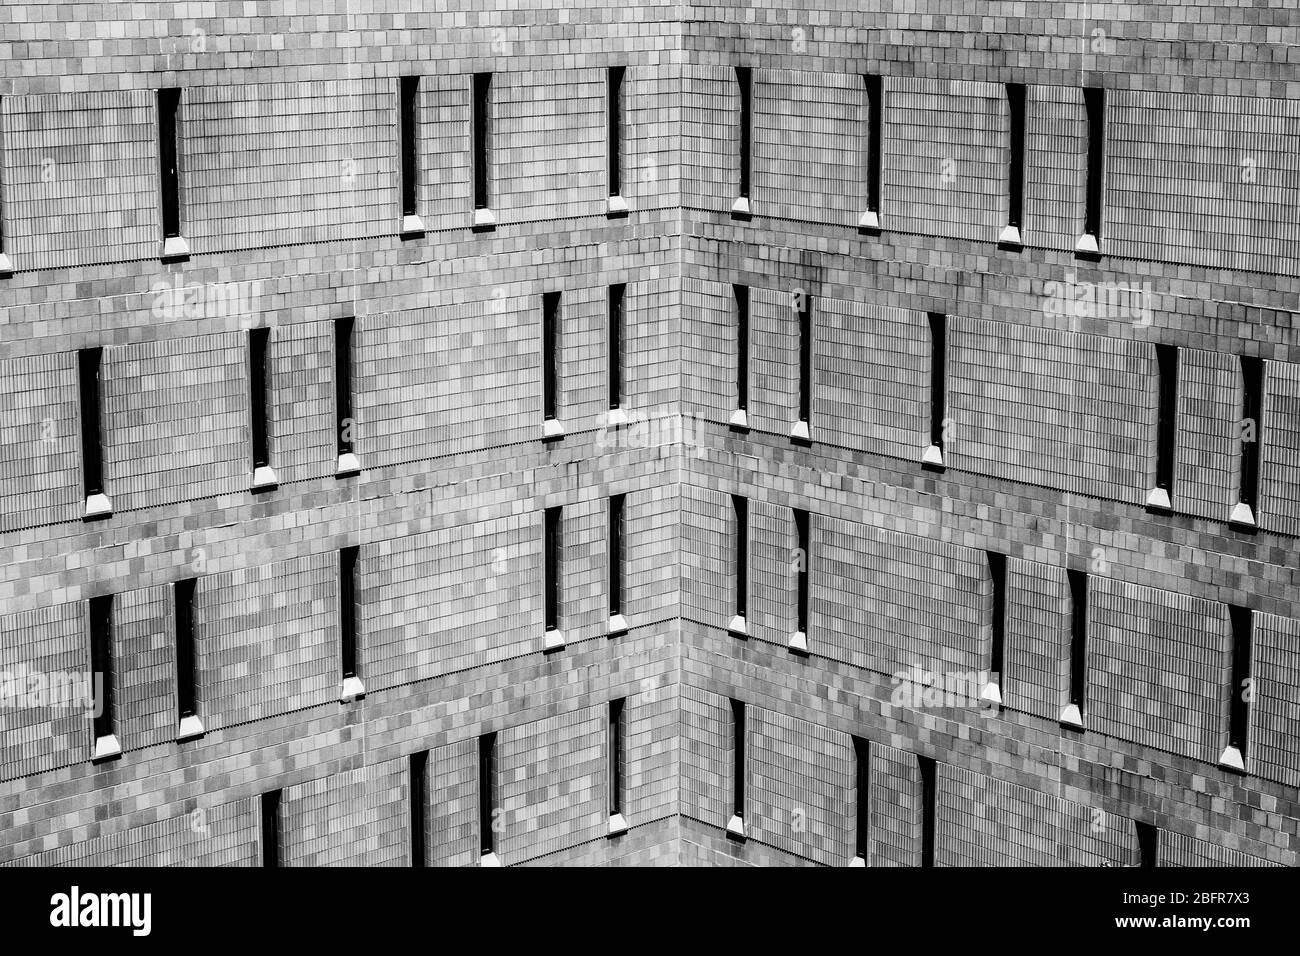 Jail or Prison harsh brick exterior. Thin windows let in a minimum of light and offer maximum security. Stock Photo